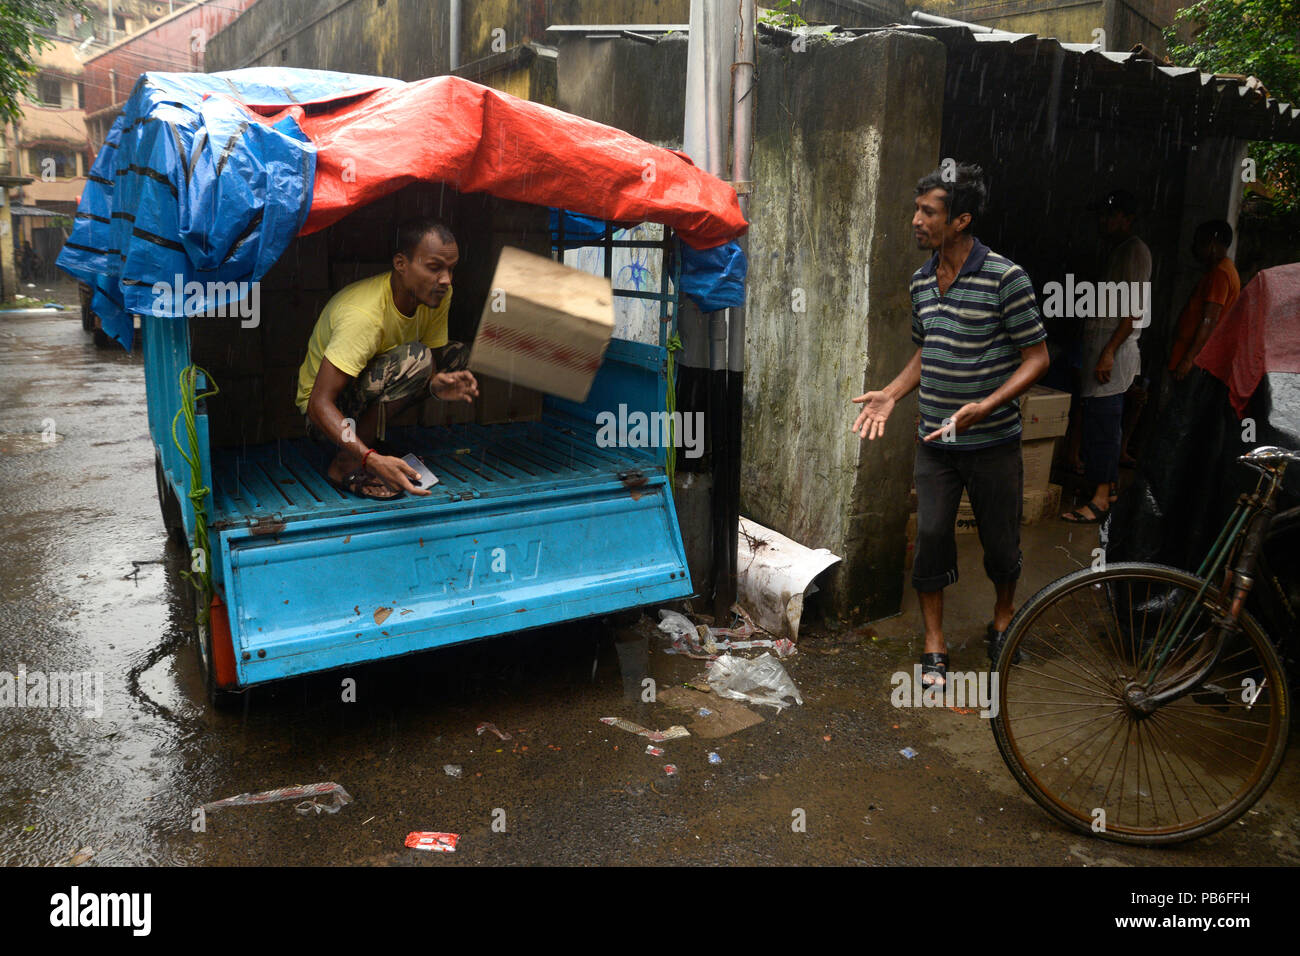 Kolkata, India  26th July, 2018  Indian labor loading goods